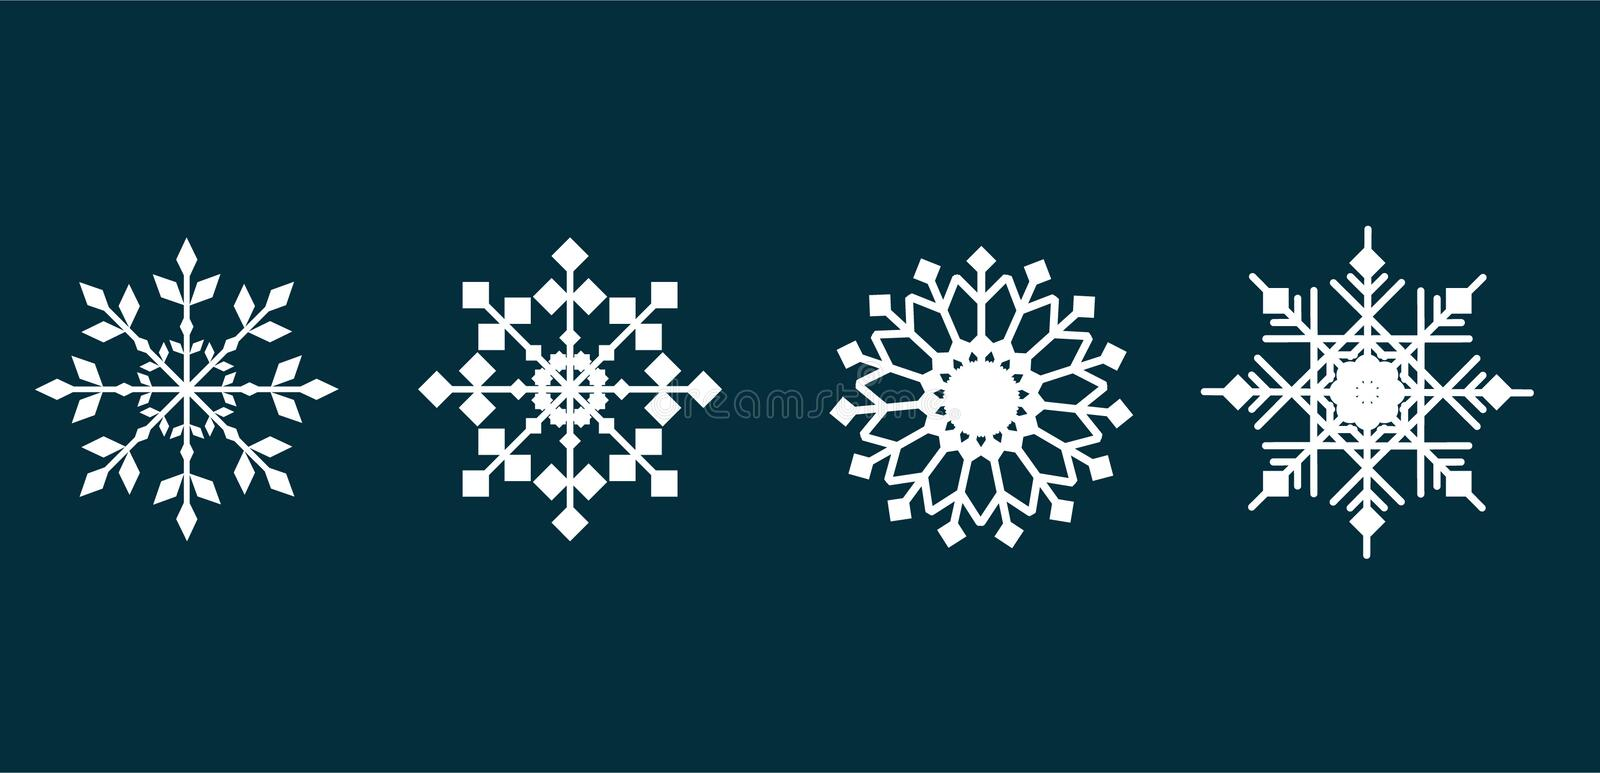 Set of white snowflakes icons. Vector illustration on blue isolated background royalty free stock image